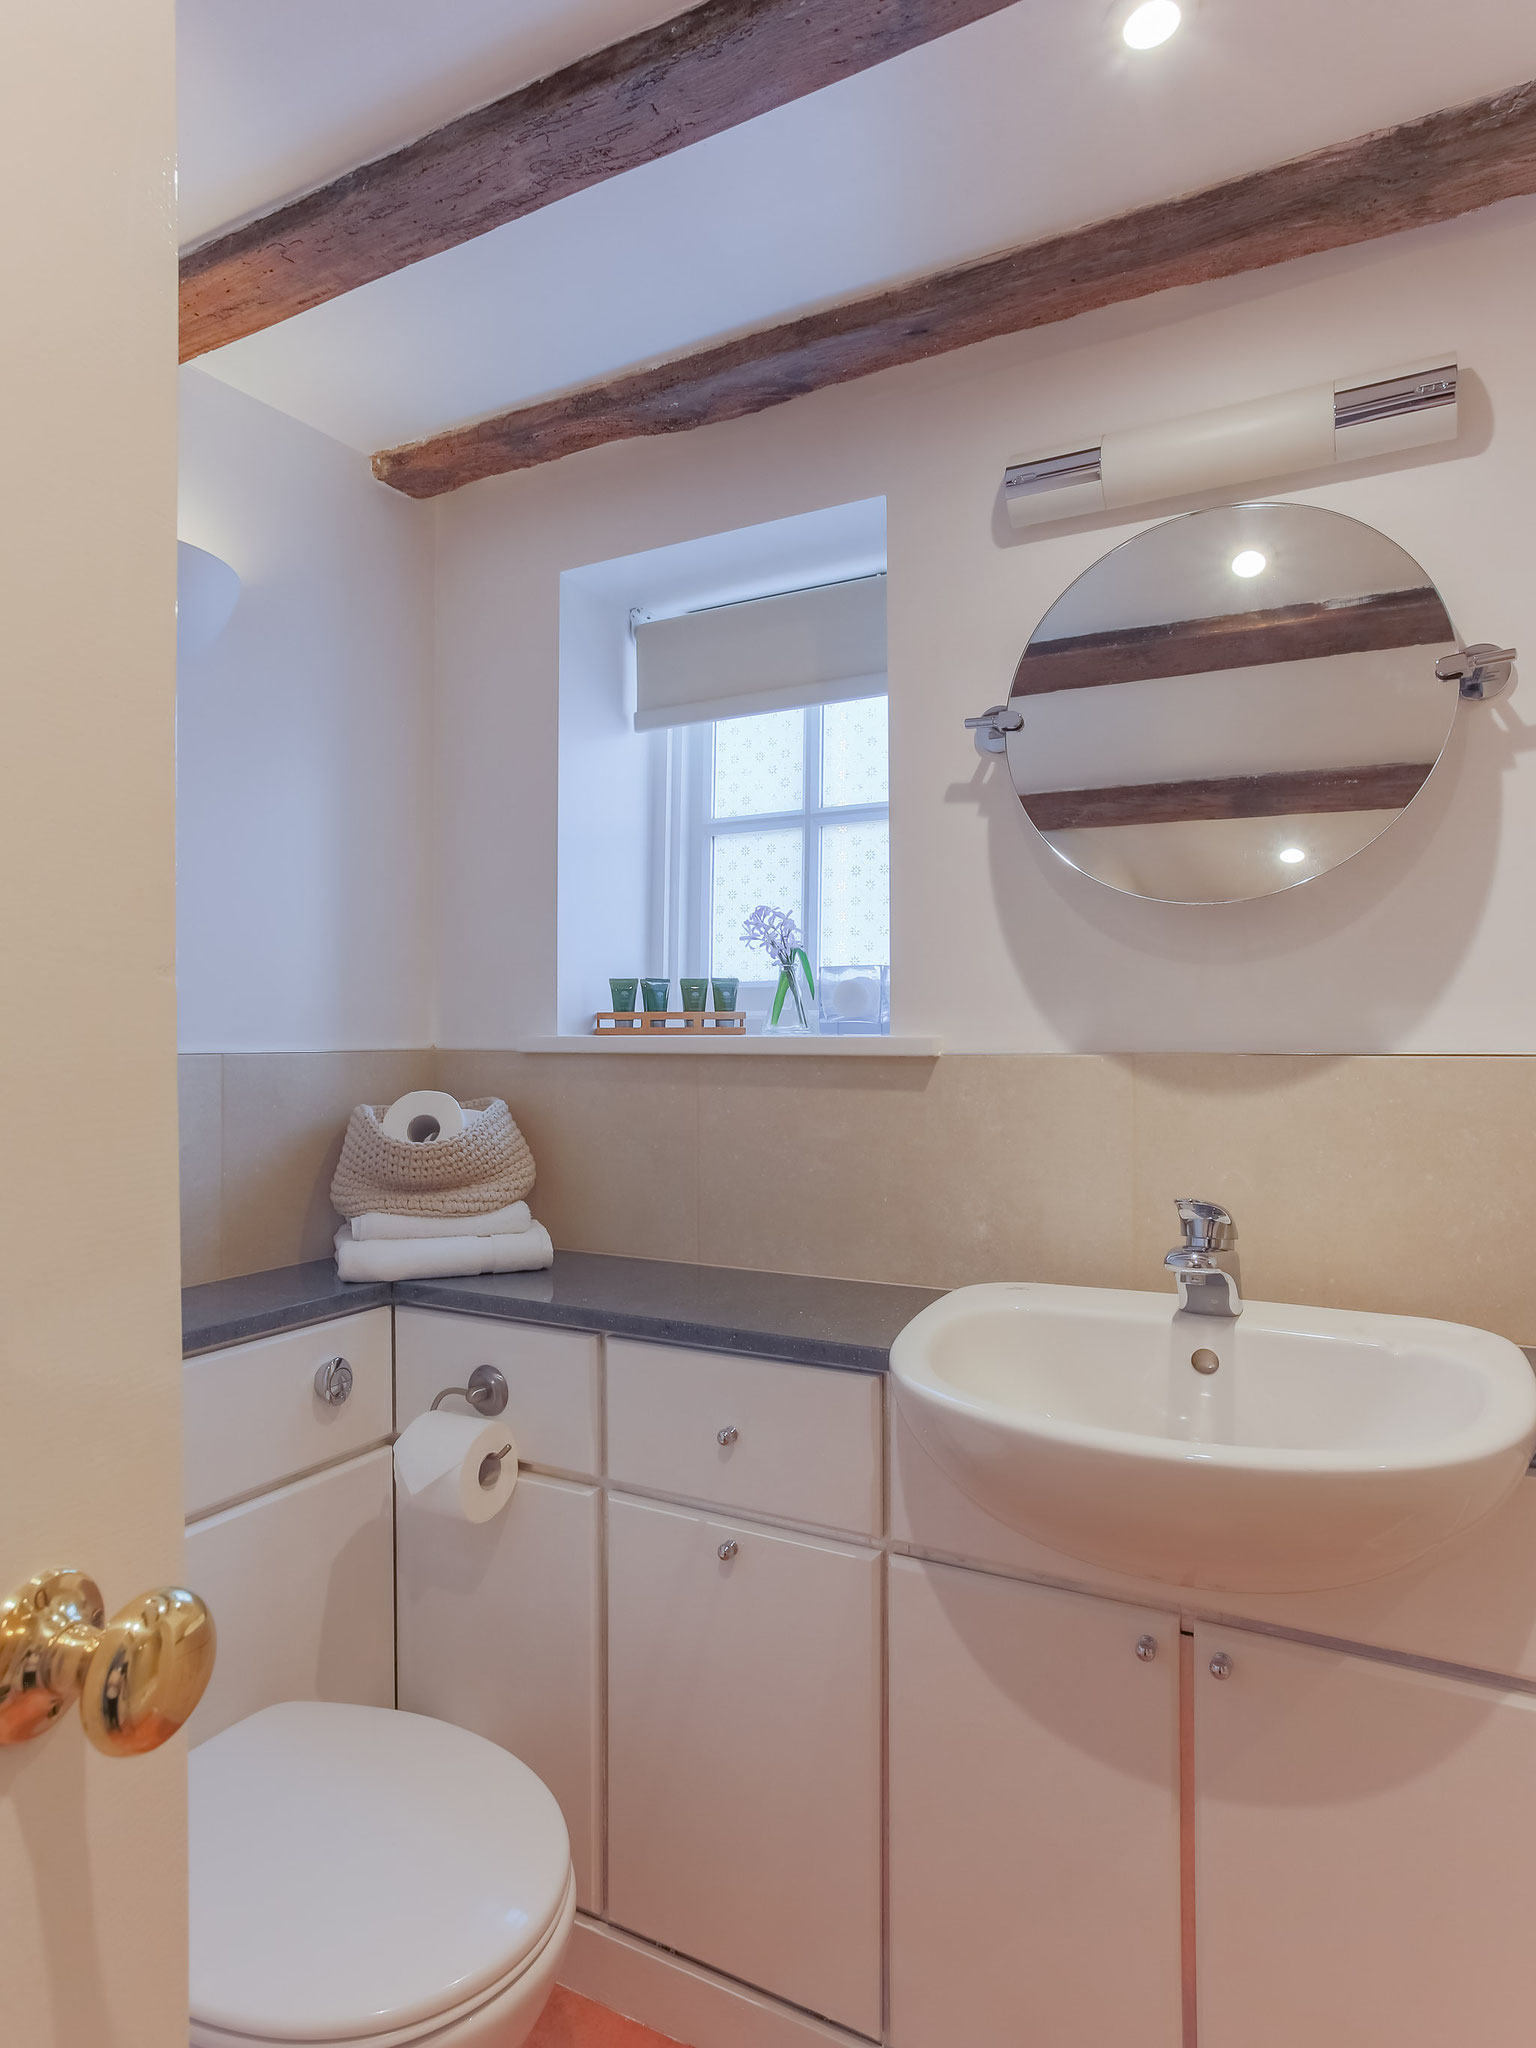 The bathroom has plenty of storage and counter space